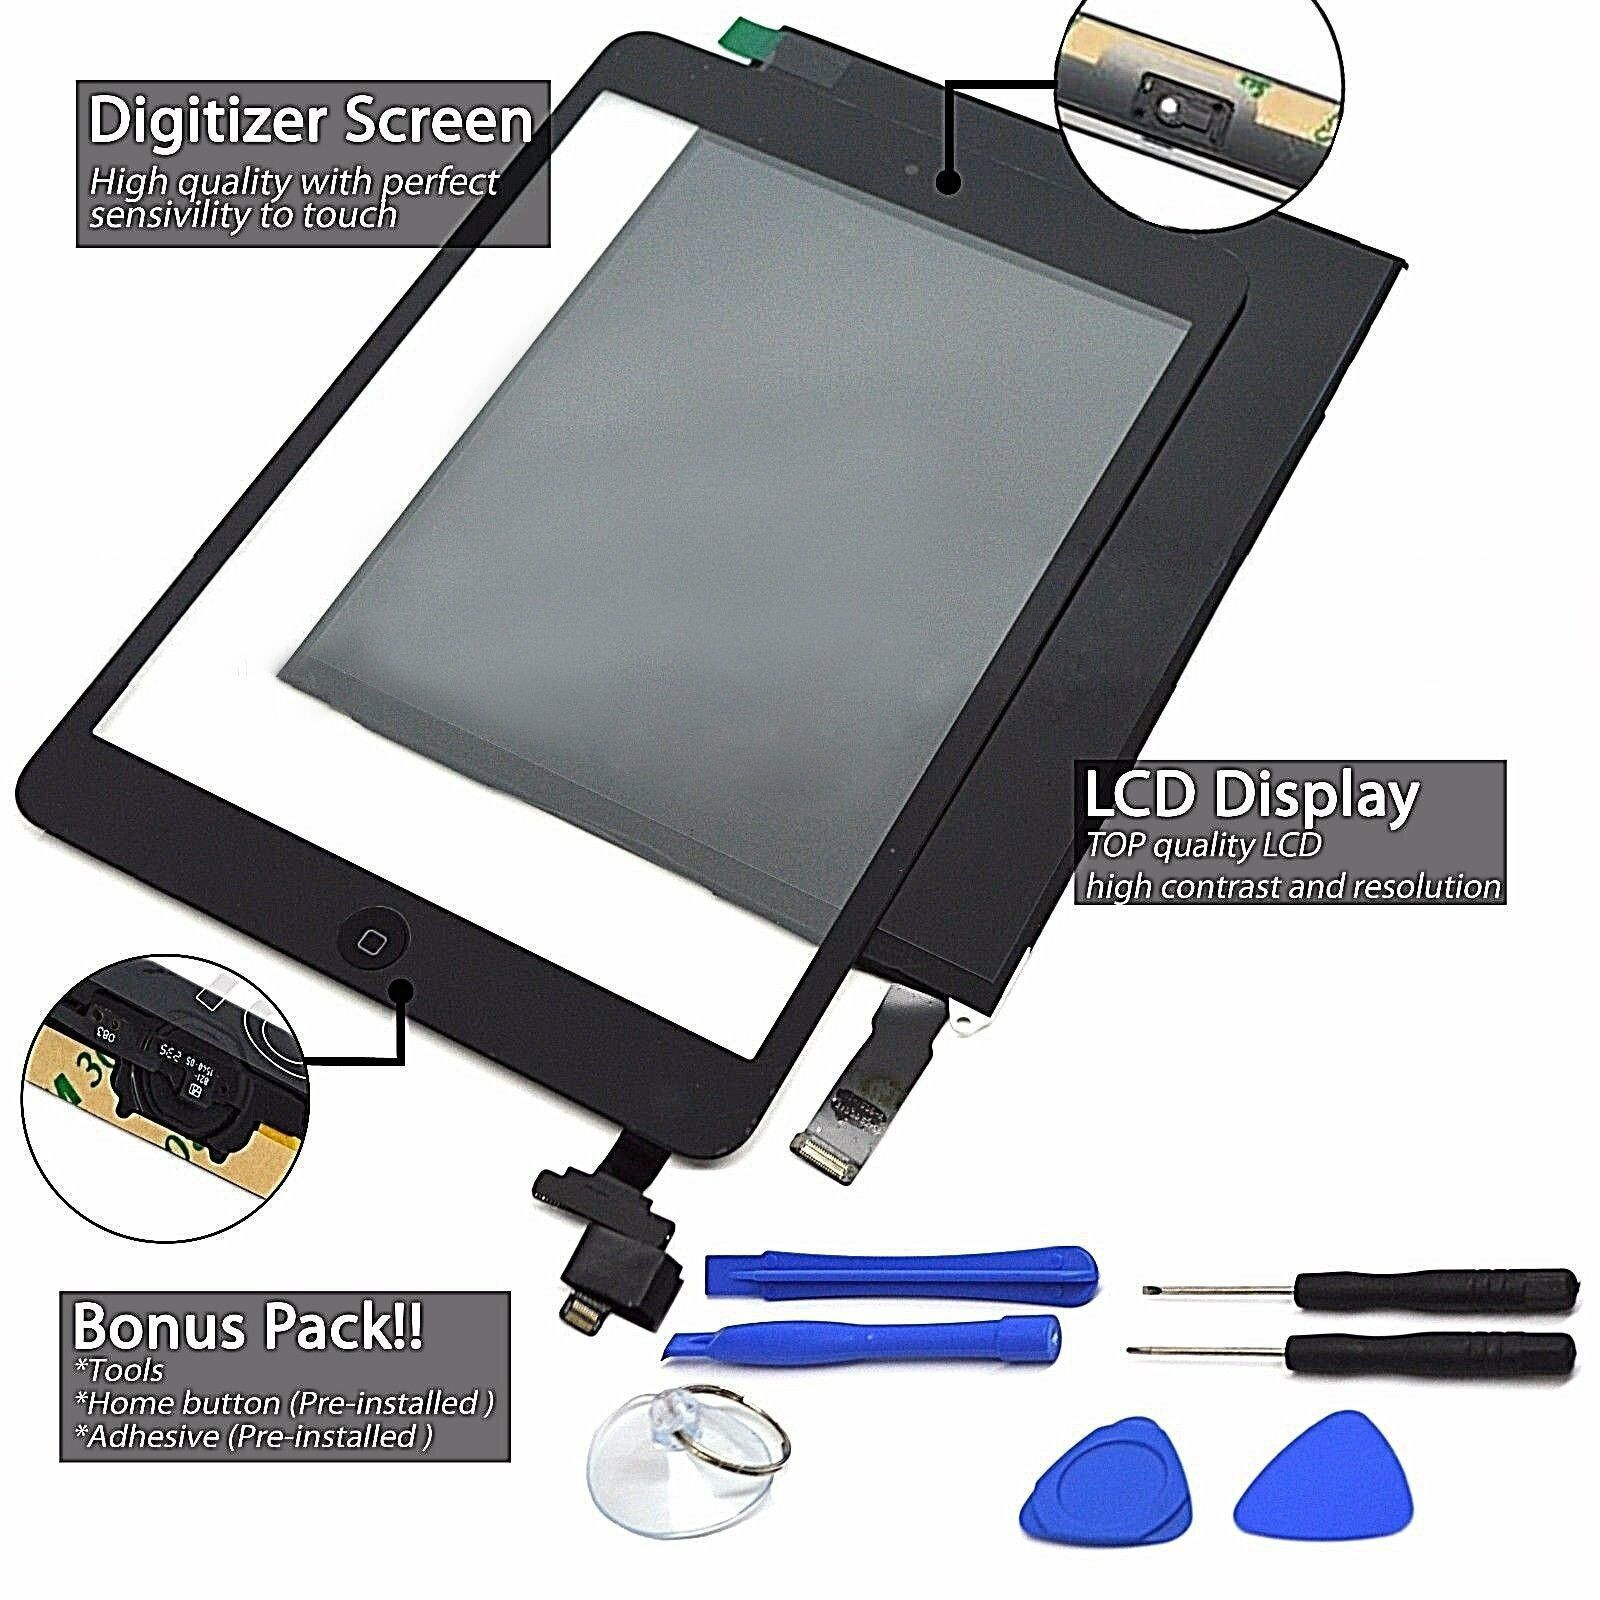 LOT OF 3 TOUCH SCREEN DIGITIZER REPLACEMENT FOR APPLE IPAD 2 BLACK A1395 A1396